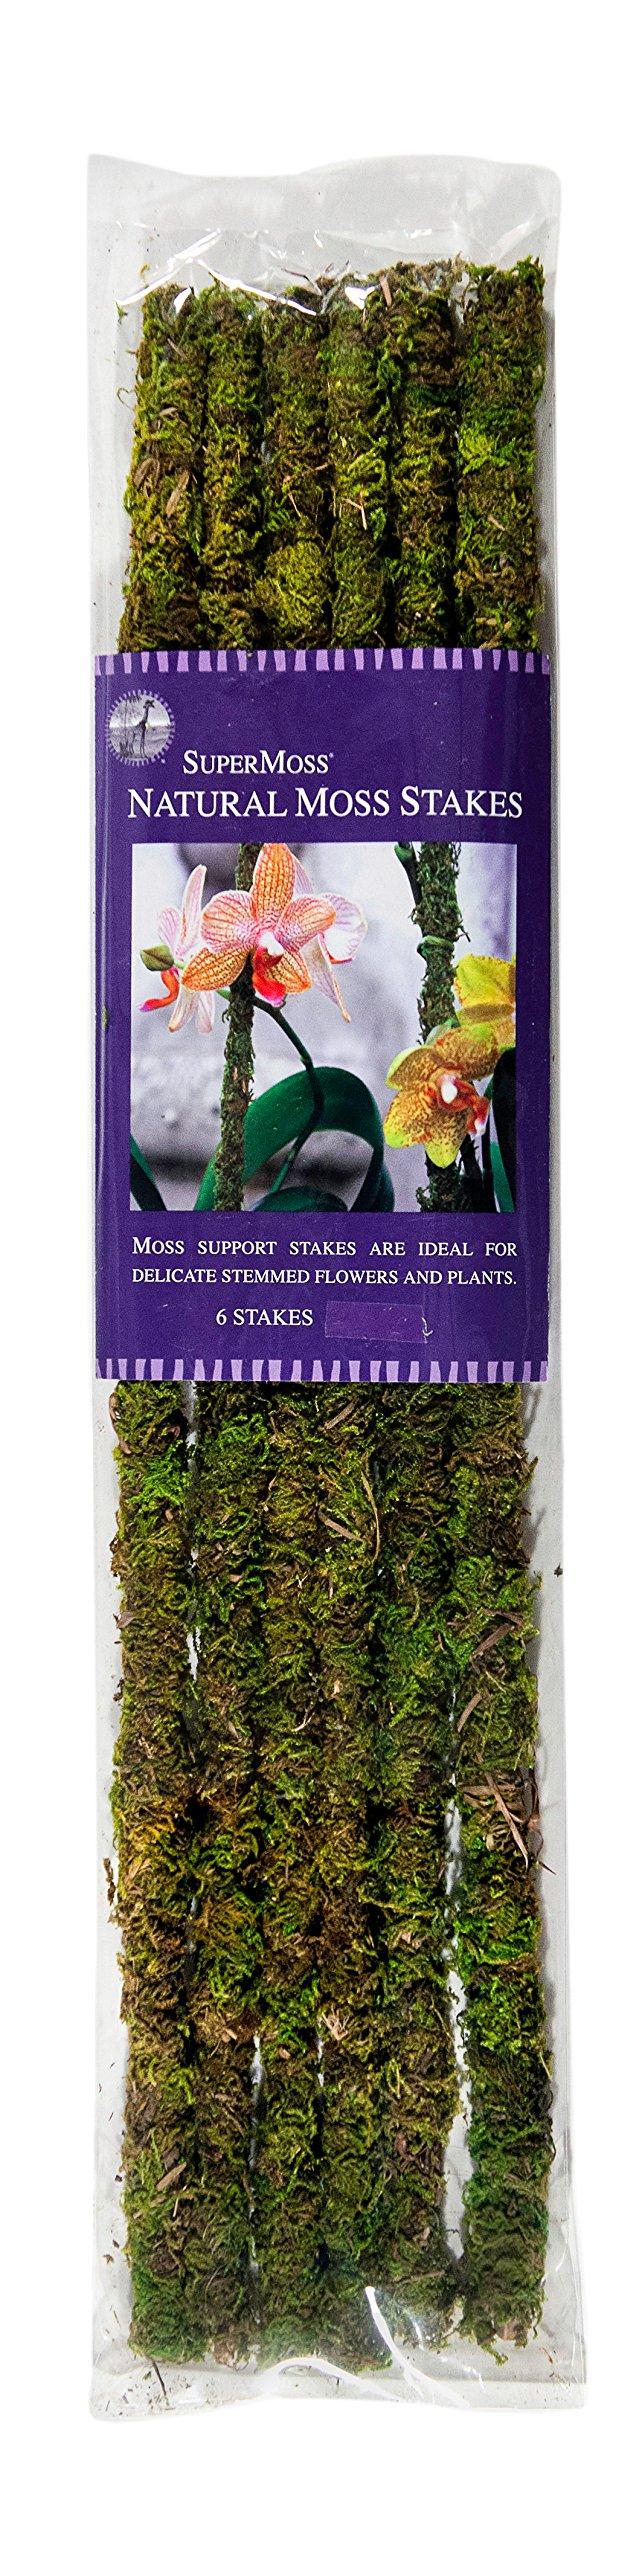 Super Moss 22050 Moss Covered Stakes, Green, 18-Inch Height